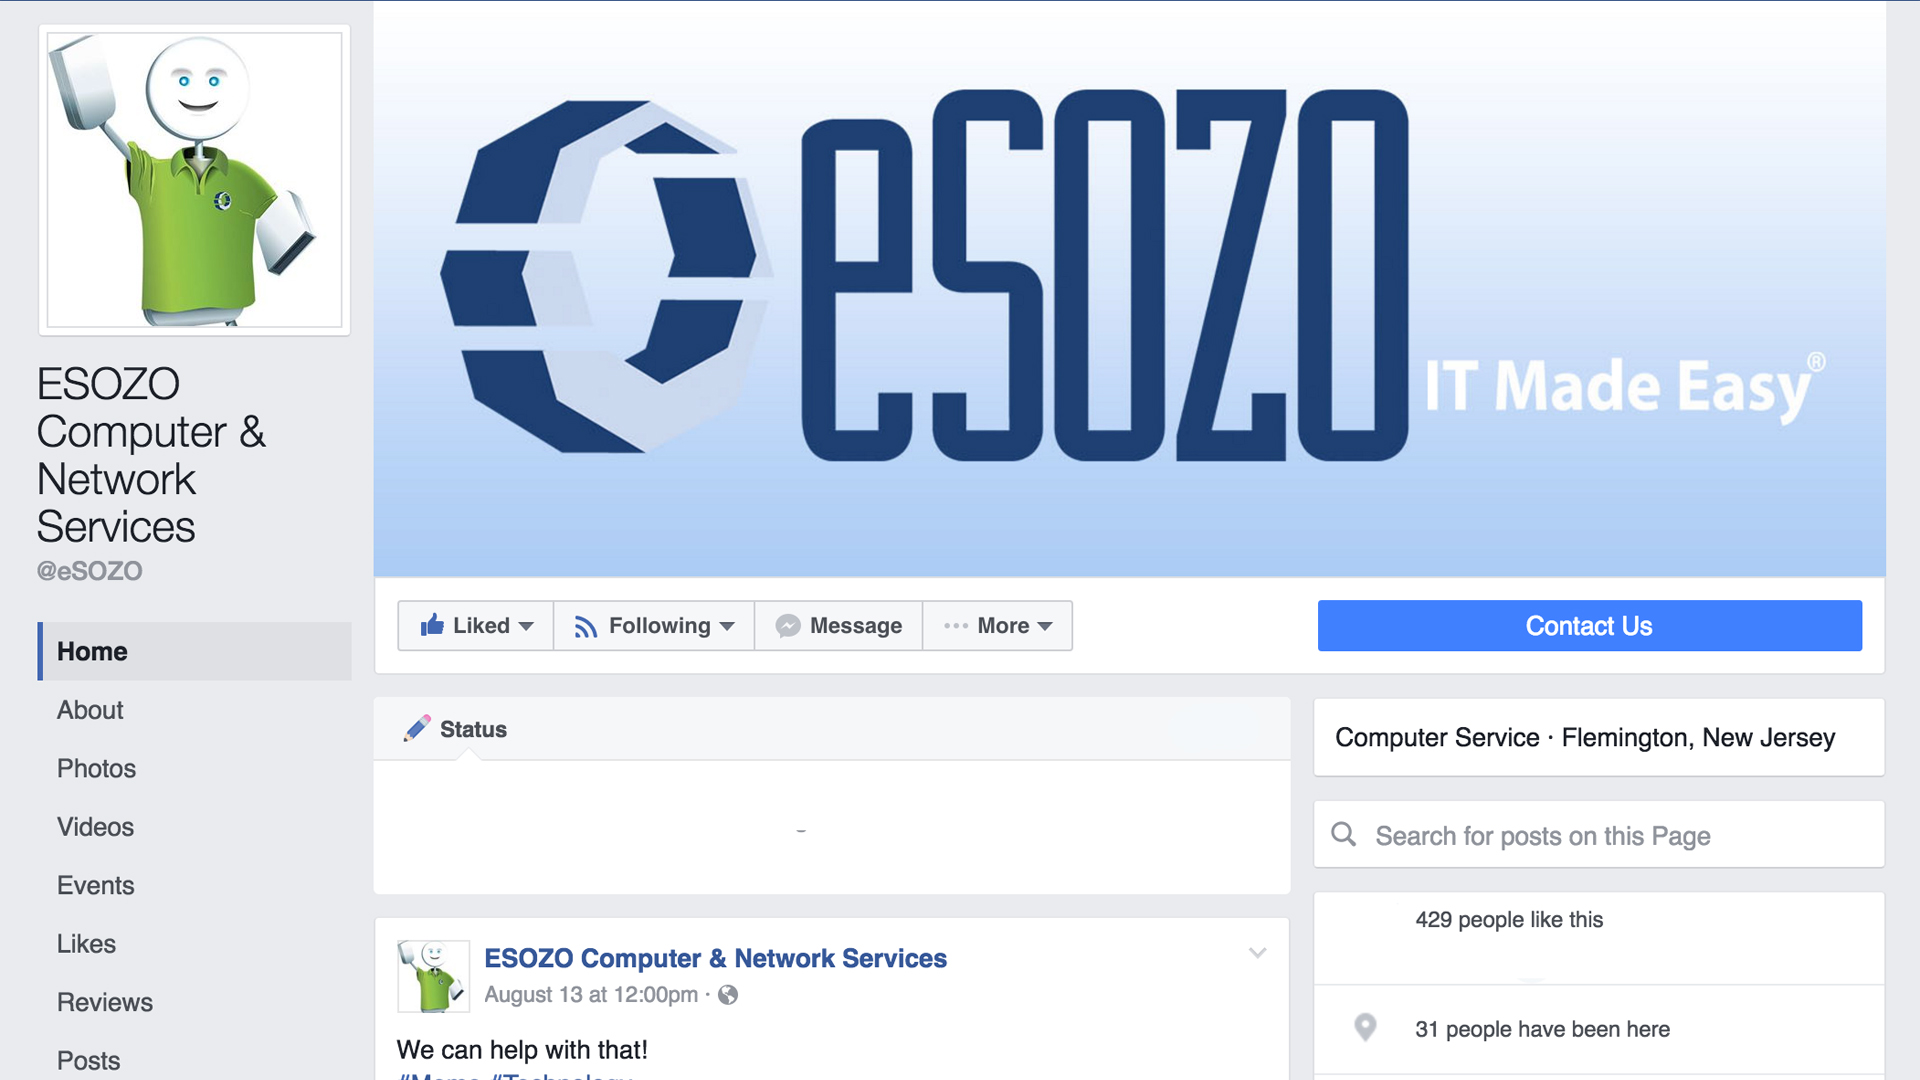 https://www.facebook.com/eSOZO/